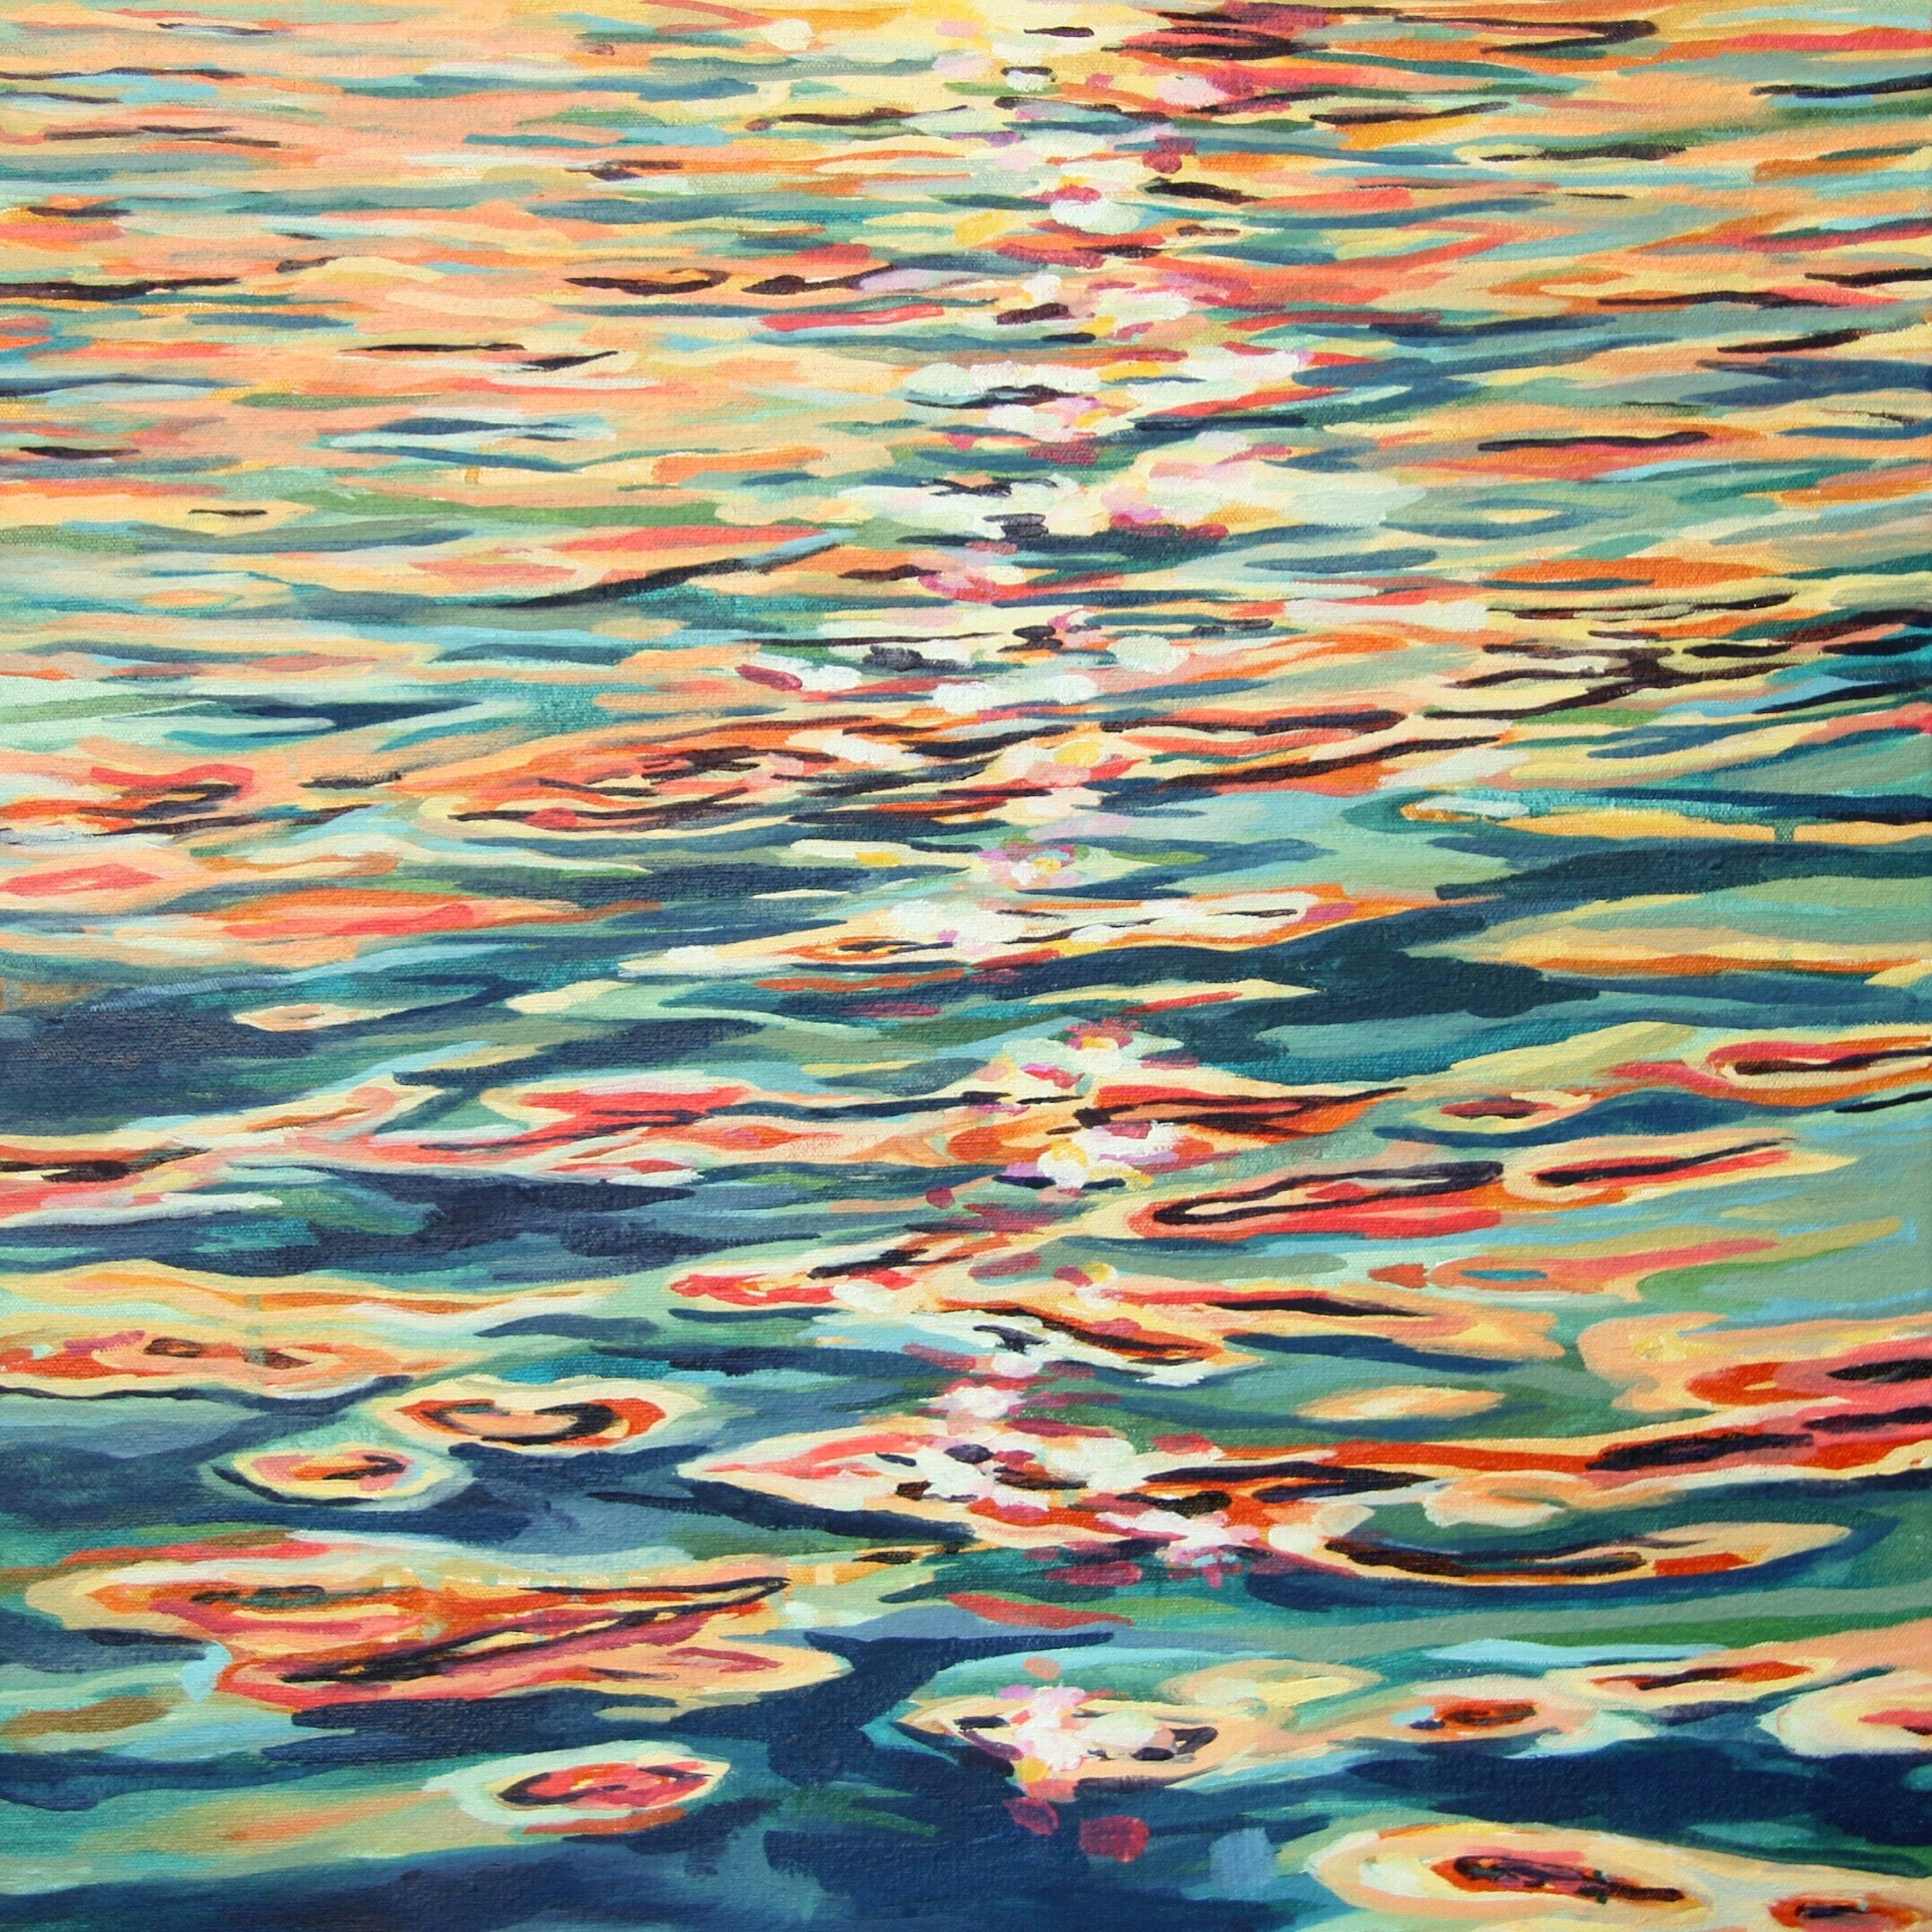 """'Rift'  2015  20"""" x 20""""  water soluble oil on canvas  sold"""